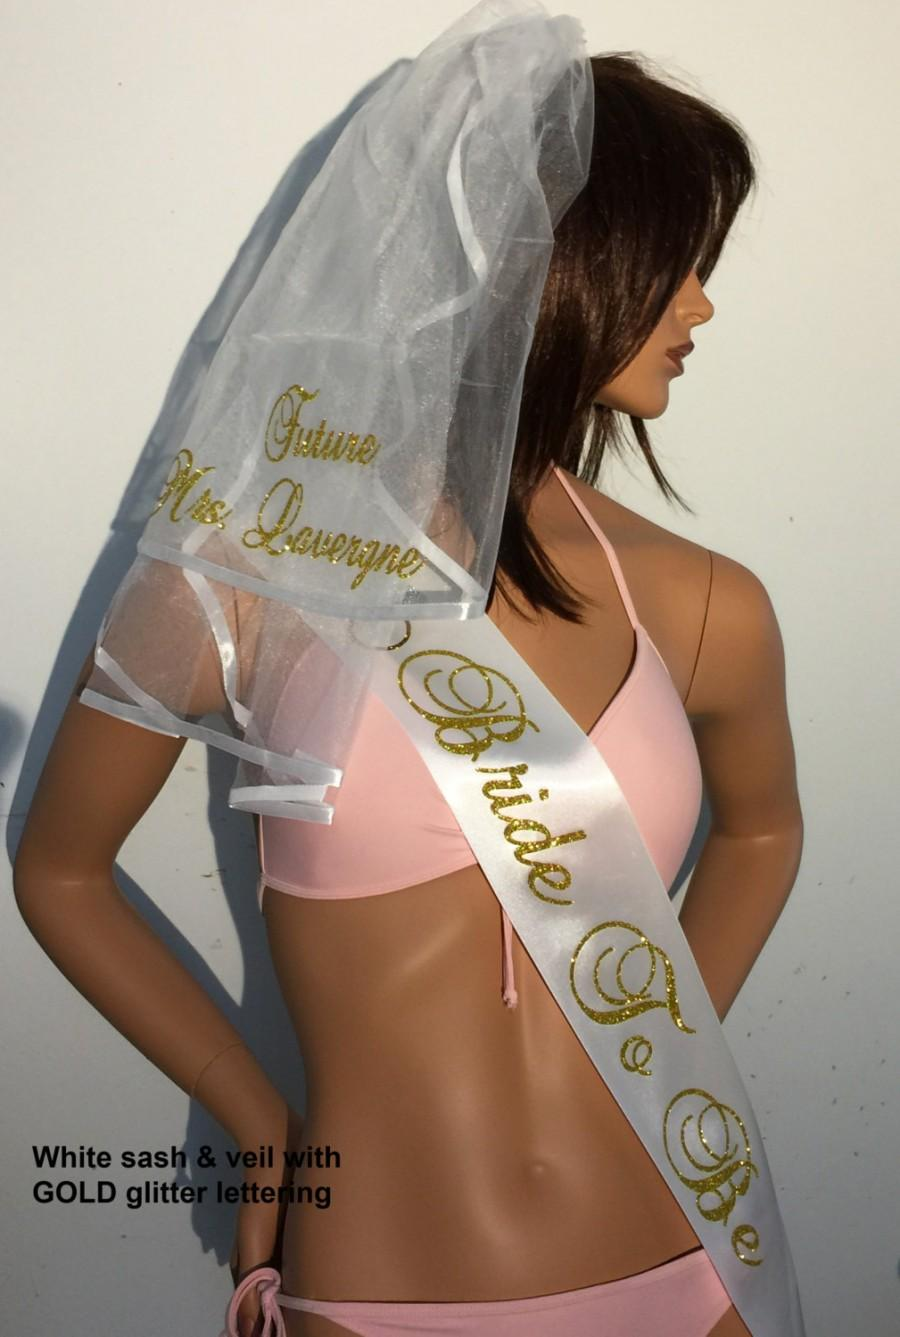 Свадьба - Veil, Bachelorette Party, Bachelorette Sash, Monogrammed Veil, Veil & Sash, Bachelorette, FREE PERSONALIZATION  By Val's Veils